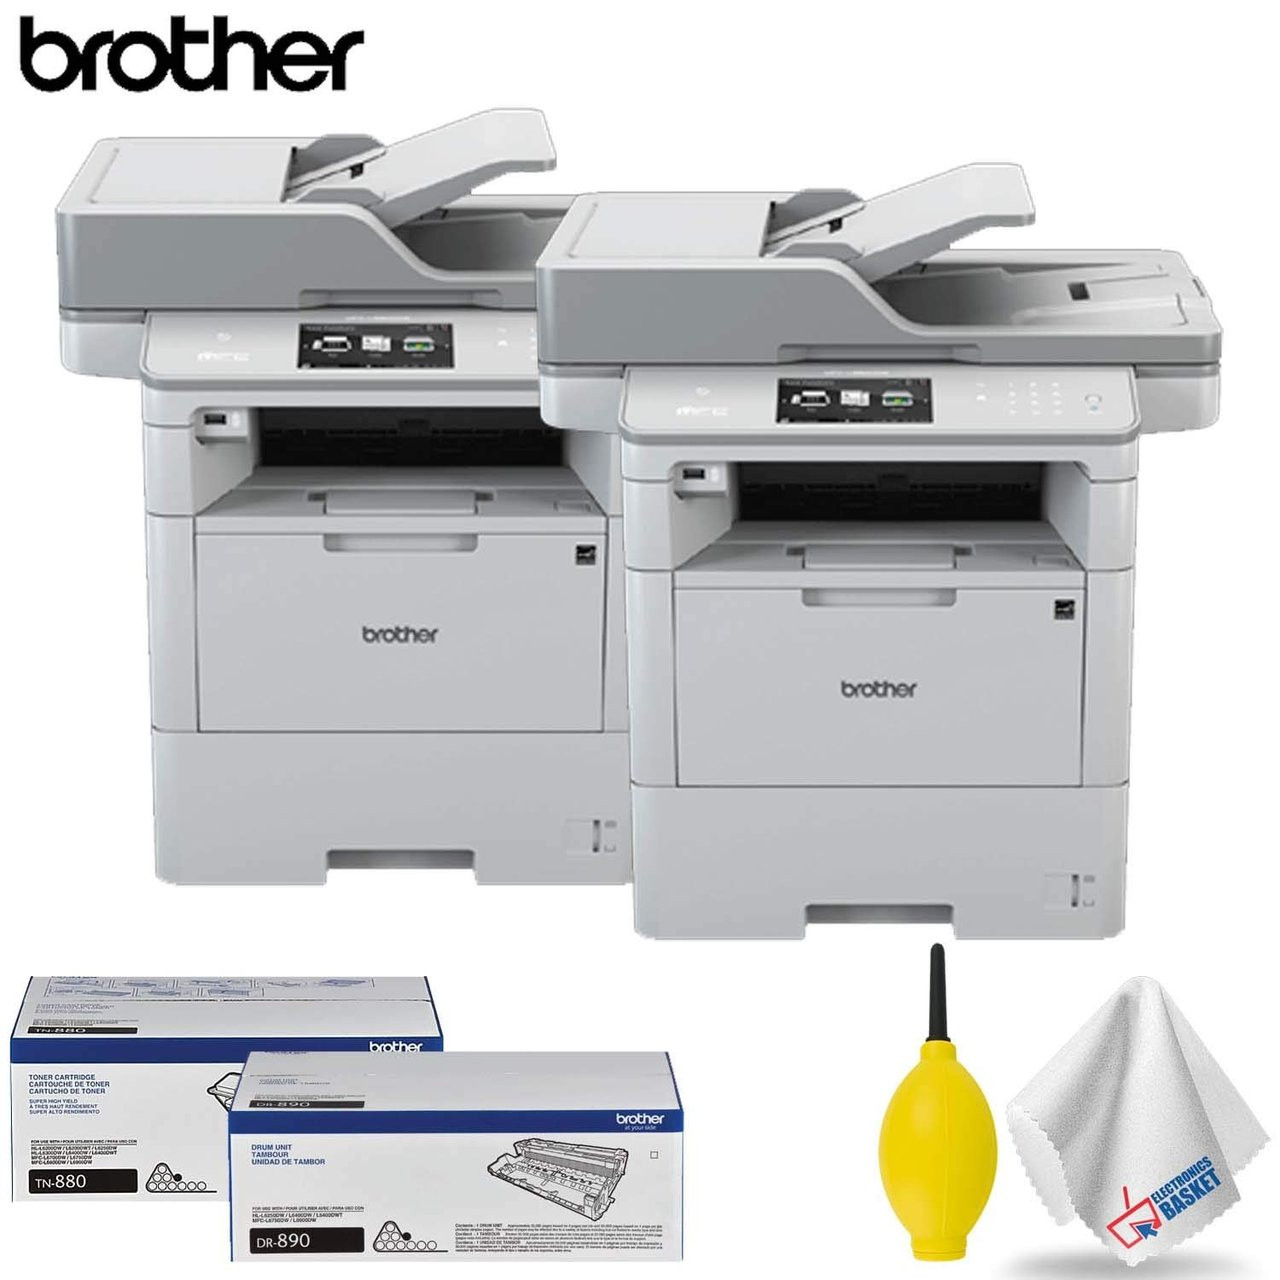 Brother MFC-L6900DW Monochrome All-in-One Laser Printer Professional  Accessory Kit